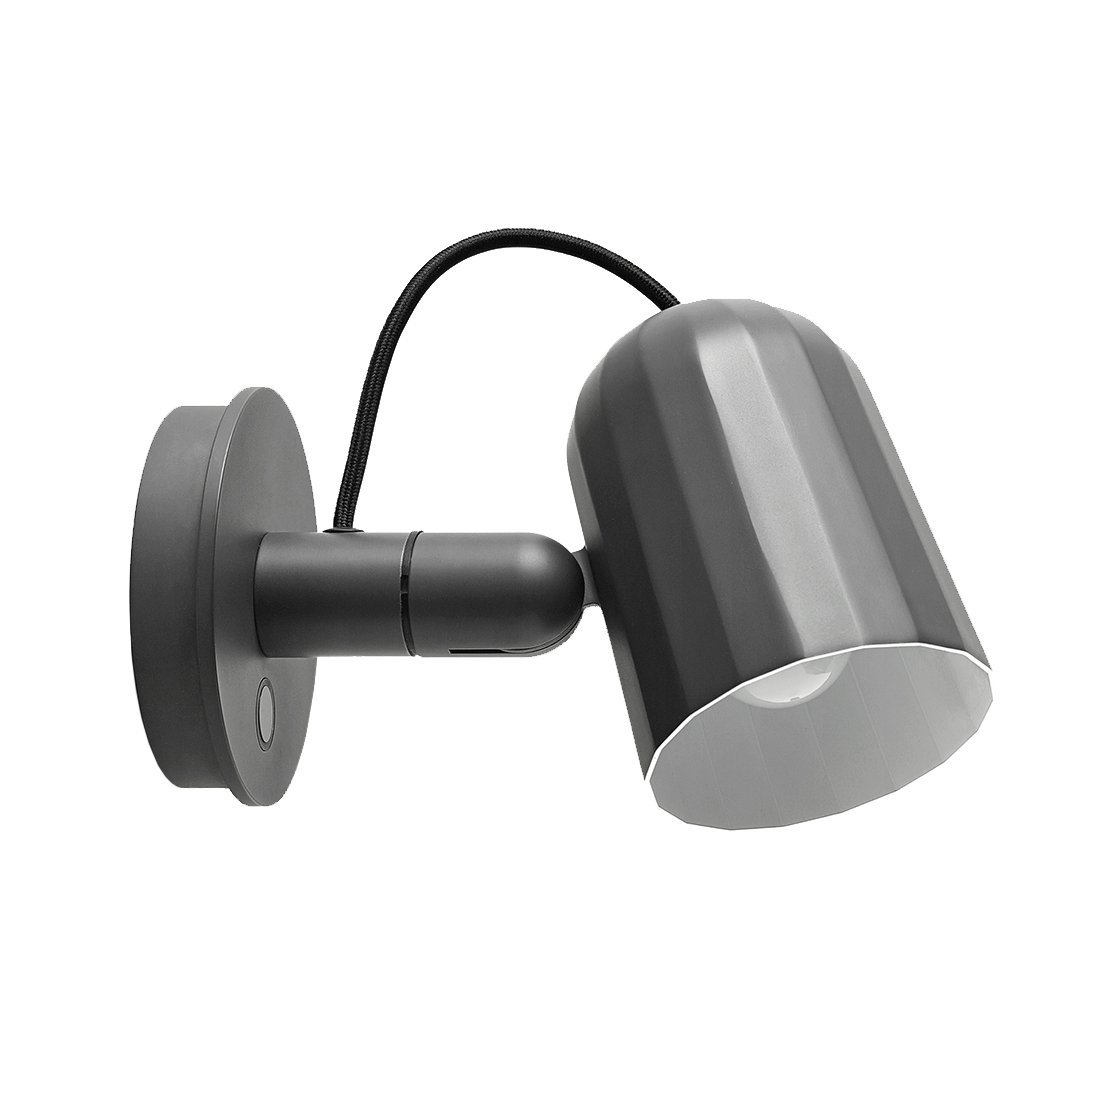 NOC Button Wandlamp